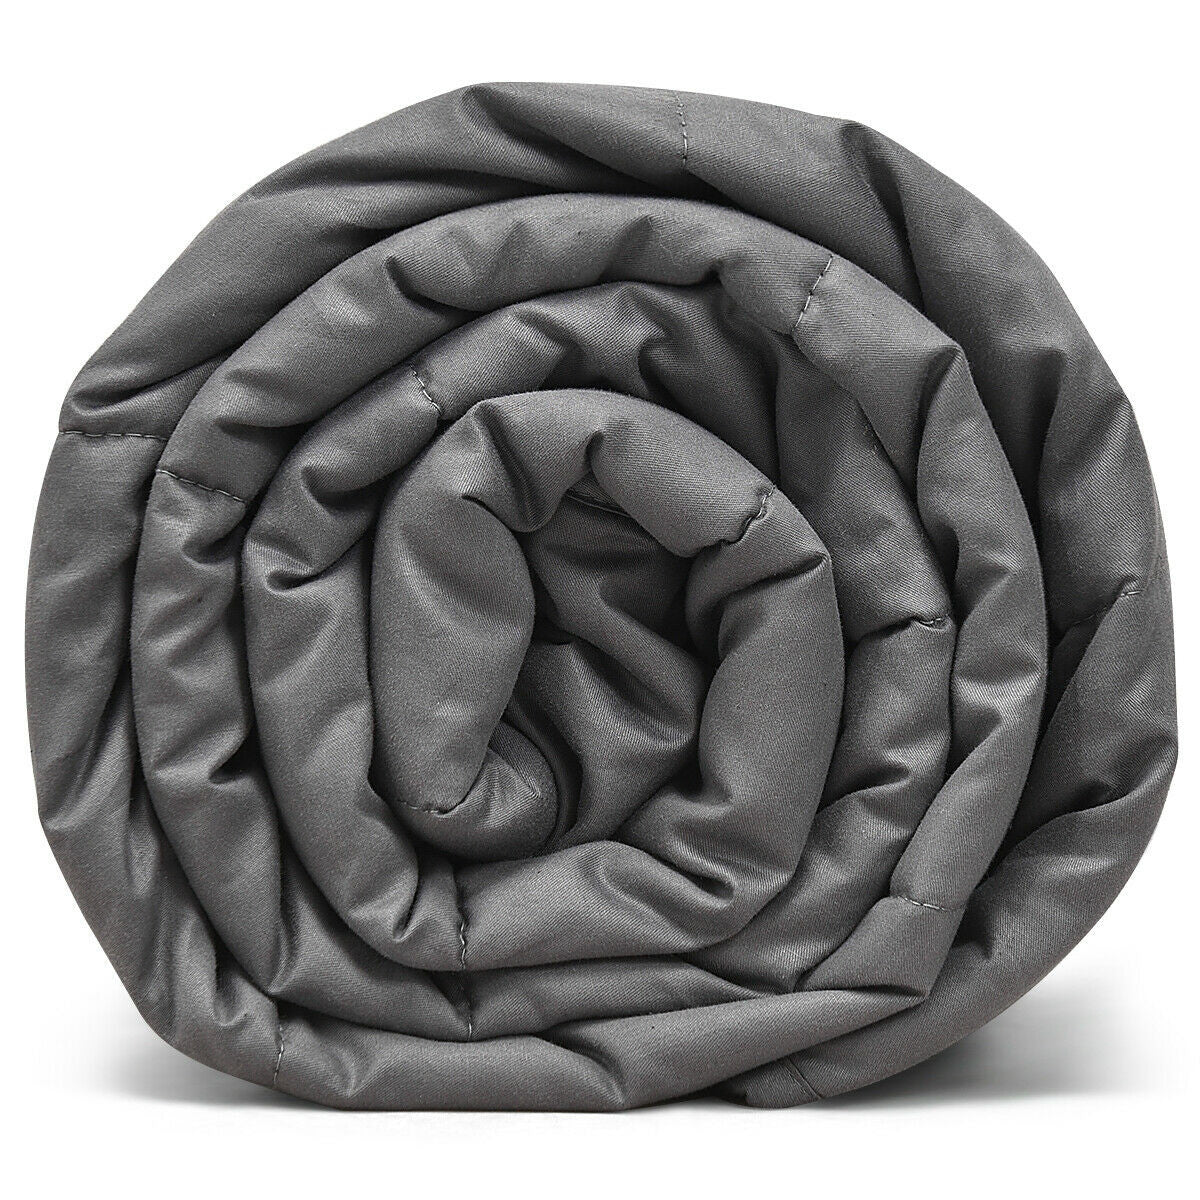 12 lbs Weighted Blankets 100% Cotton with Glass Beads